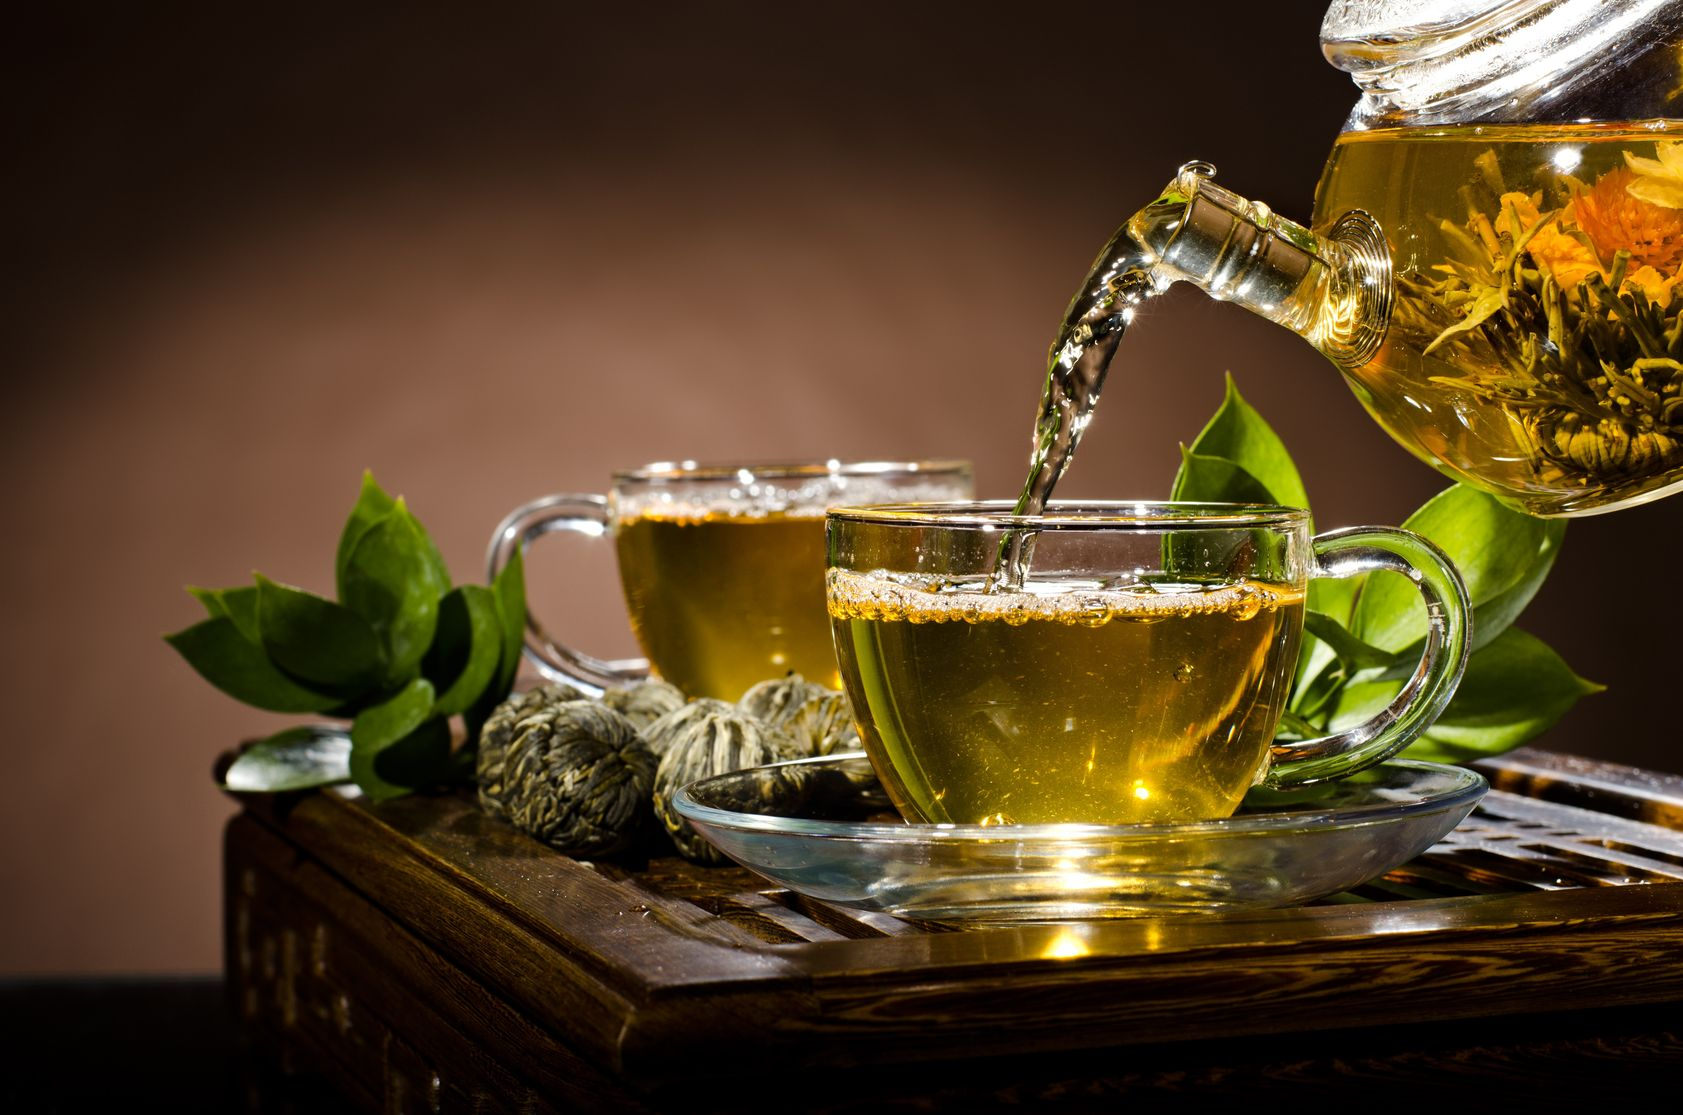 tea increases bone mineral density and prevents osteoporosis